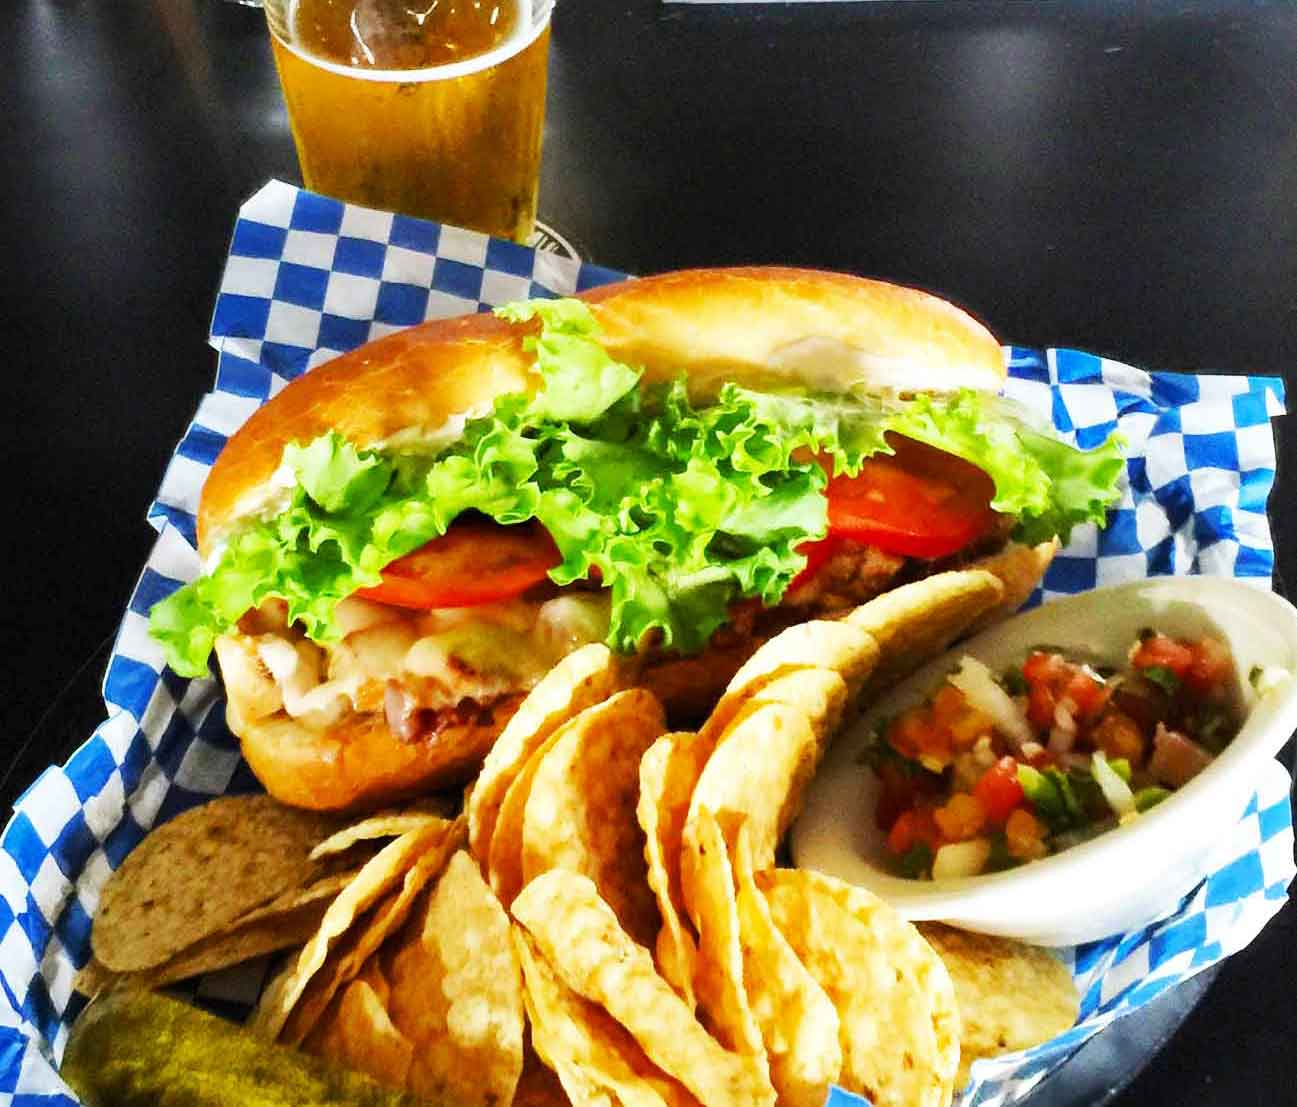 smarty-pants-seattle-restaurant_sandwich-with-chips-and-pickle.jpg